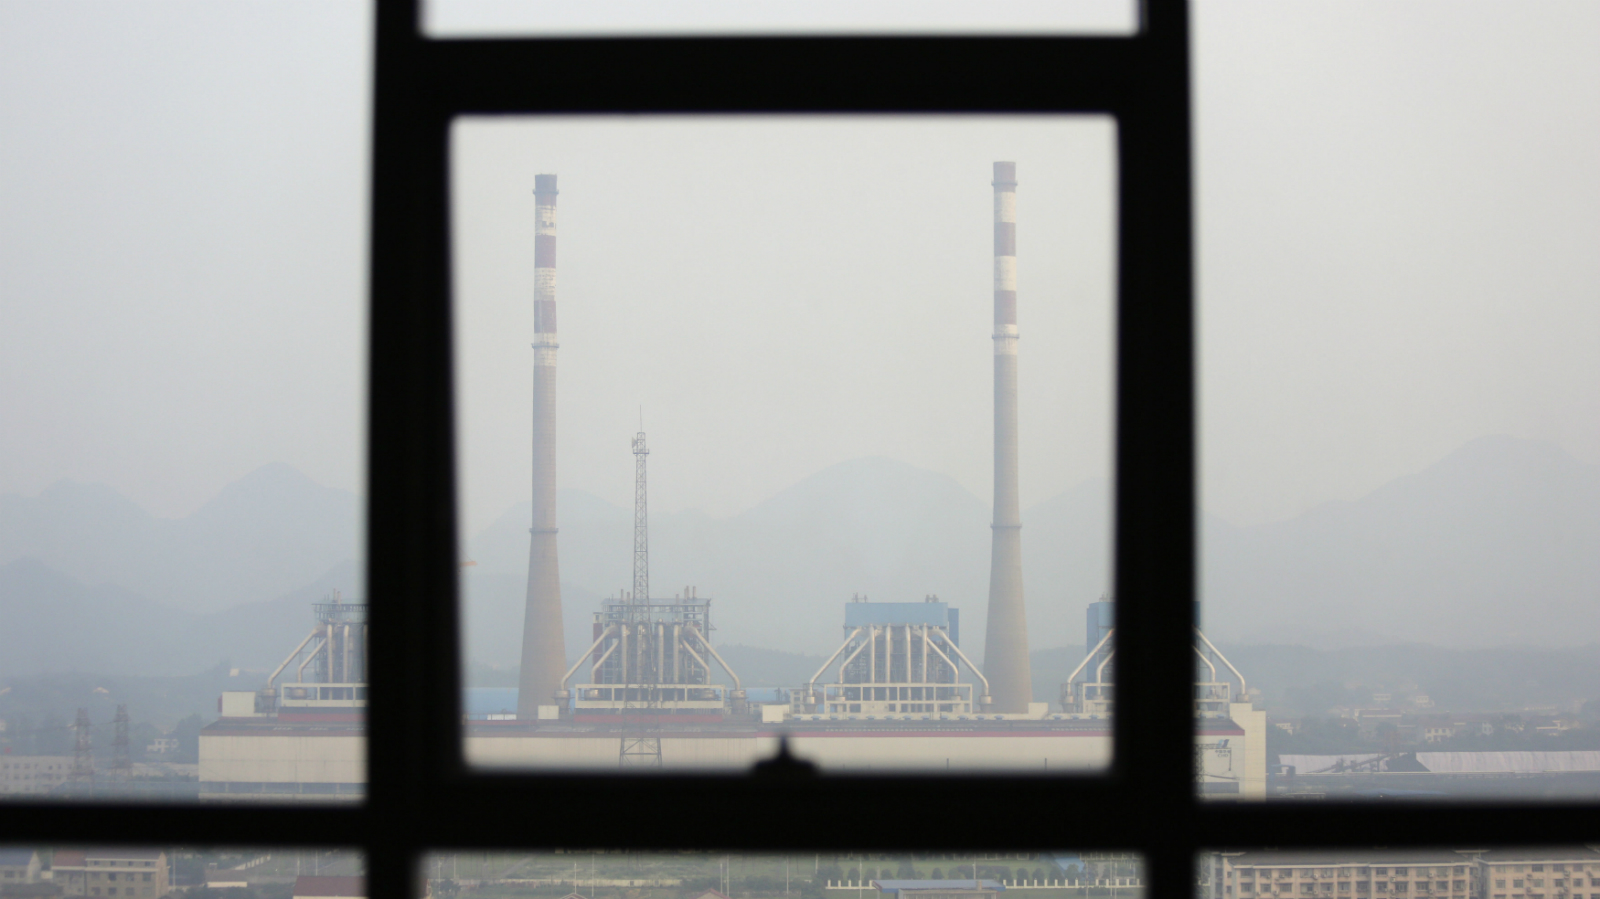 Chimneys are seen through a window at a coal-fired power plant on a hazy day in Shimen county, central China's Hunan Province, June 2, 2014. U.S. President Barack Obama's plan to cut greenhouse gas emissions from U.S. power plants, due to be announced on Monday, will win muted applause abroad with some hopes it could help a U.N. deal to fight climate change in 2015. Emerging economies including China and India are likely to be lukewarm because they have often said that Obama's plans for emissions cuts until 2020 - even if fully implemented - are far short of the curbs they say are needed by the rich. (CHINA - Tags: ENVIRONMENT BUSINESS ENERGY CITYSCAPE)